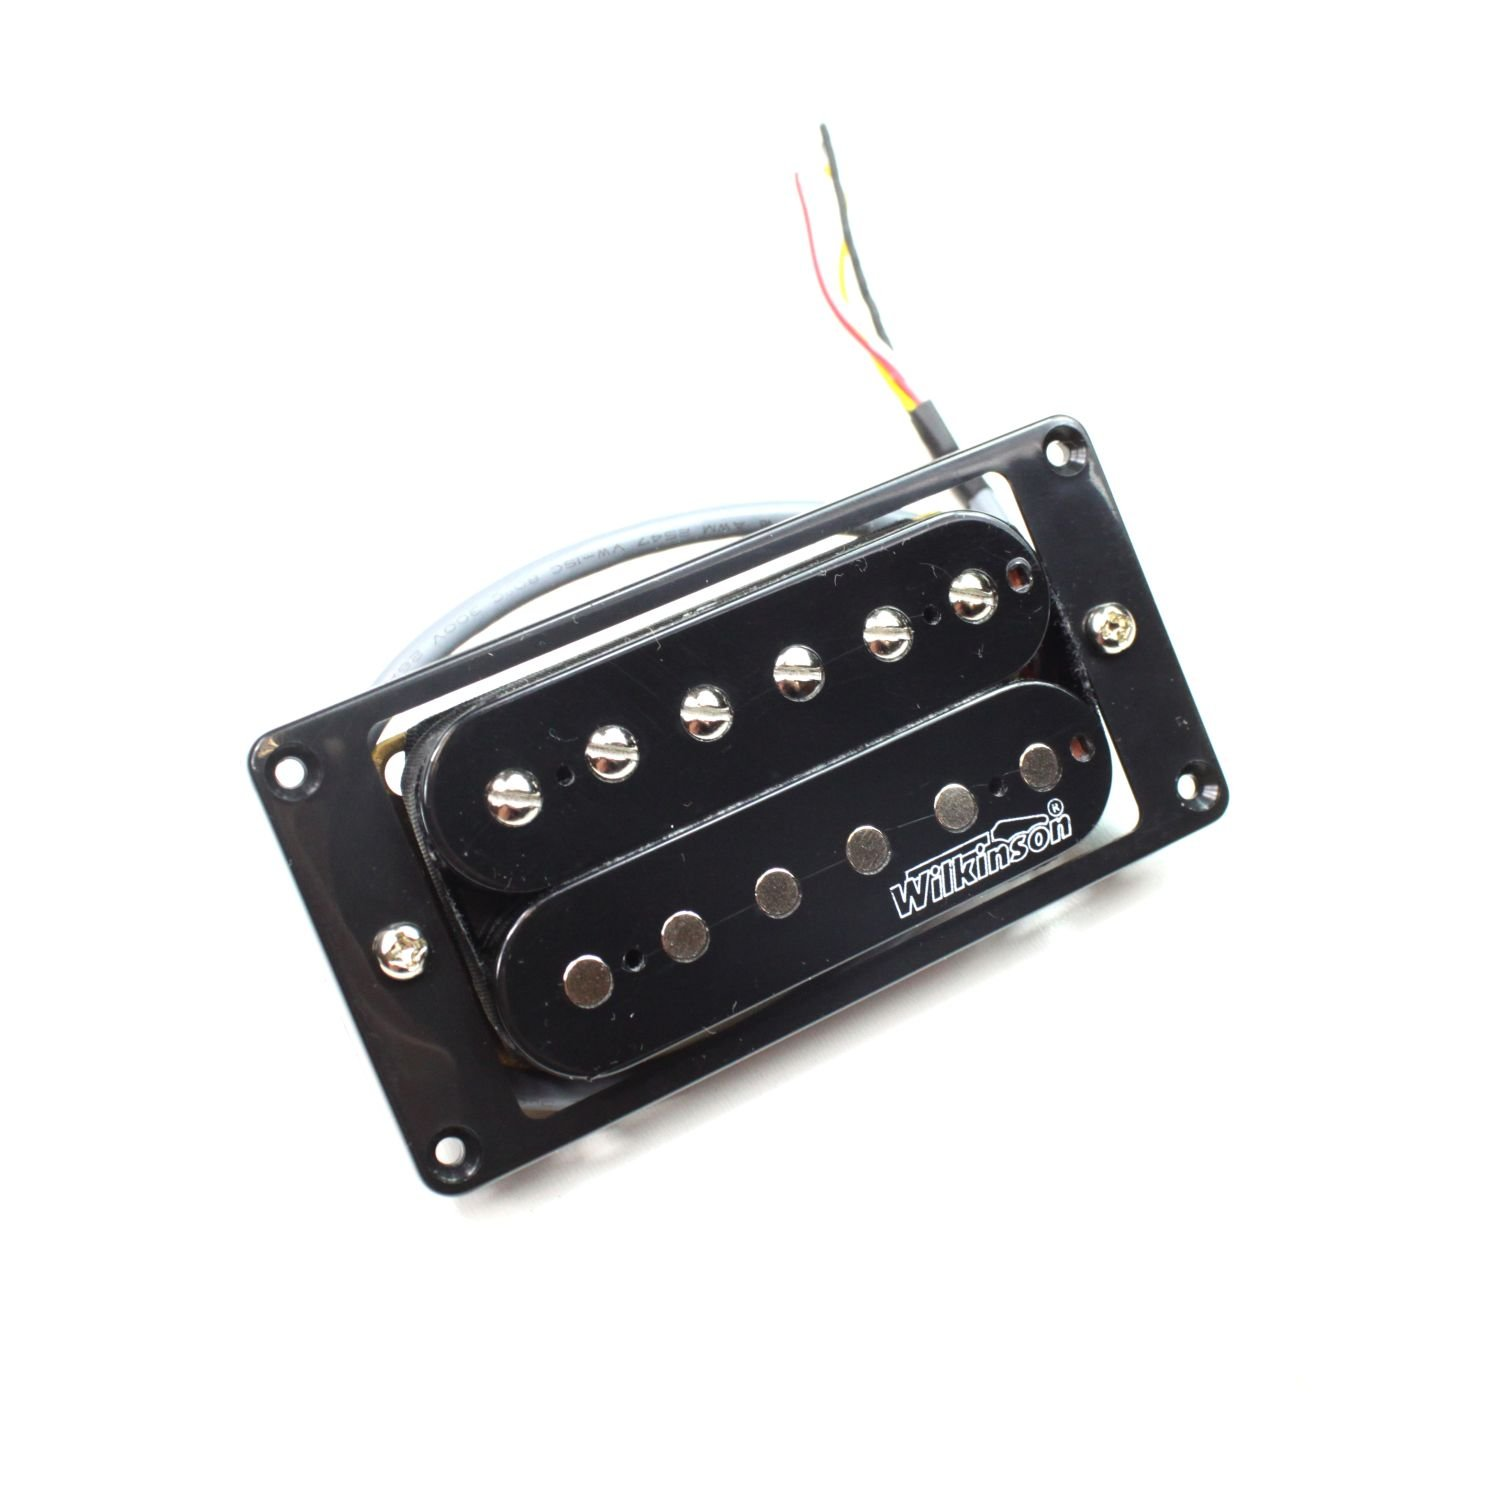 Amazon.com: Wilkinson MWHBN Electric Guitar Neck Pickup Humbucker - Black - High Output: Musical Instruments